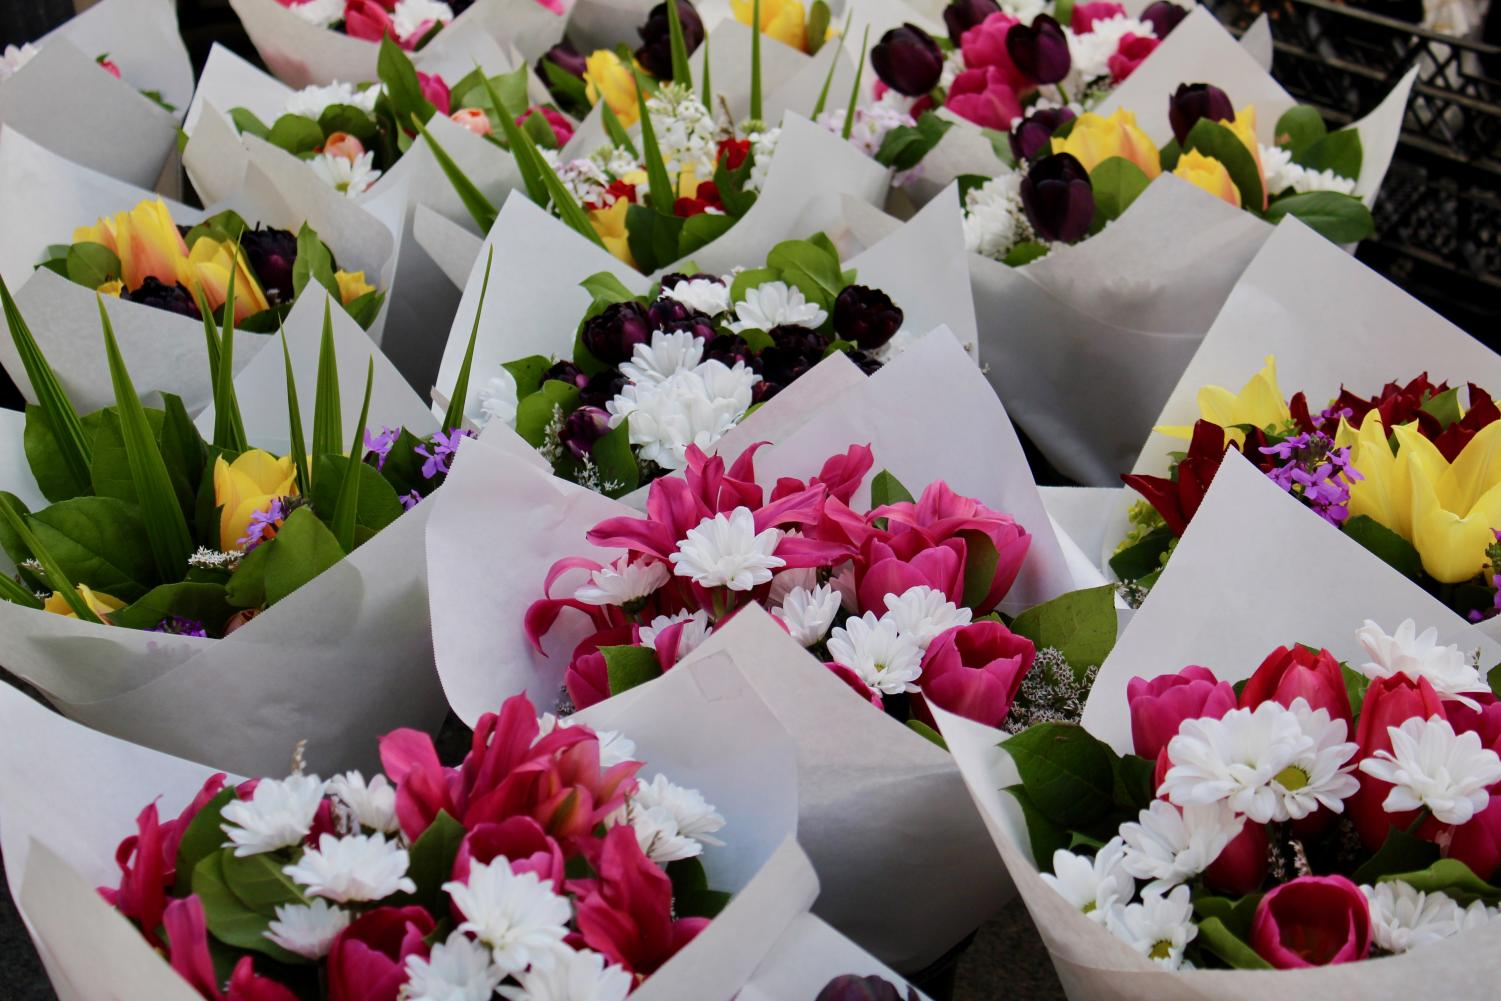 Vang Garden sold large and medium sized floral arrangements at the farmers market. Many people bought flower bouquets for their moth- ers and grandmothers for Mother's Day on May 12th.